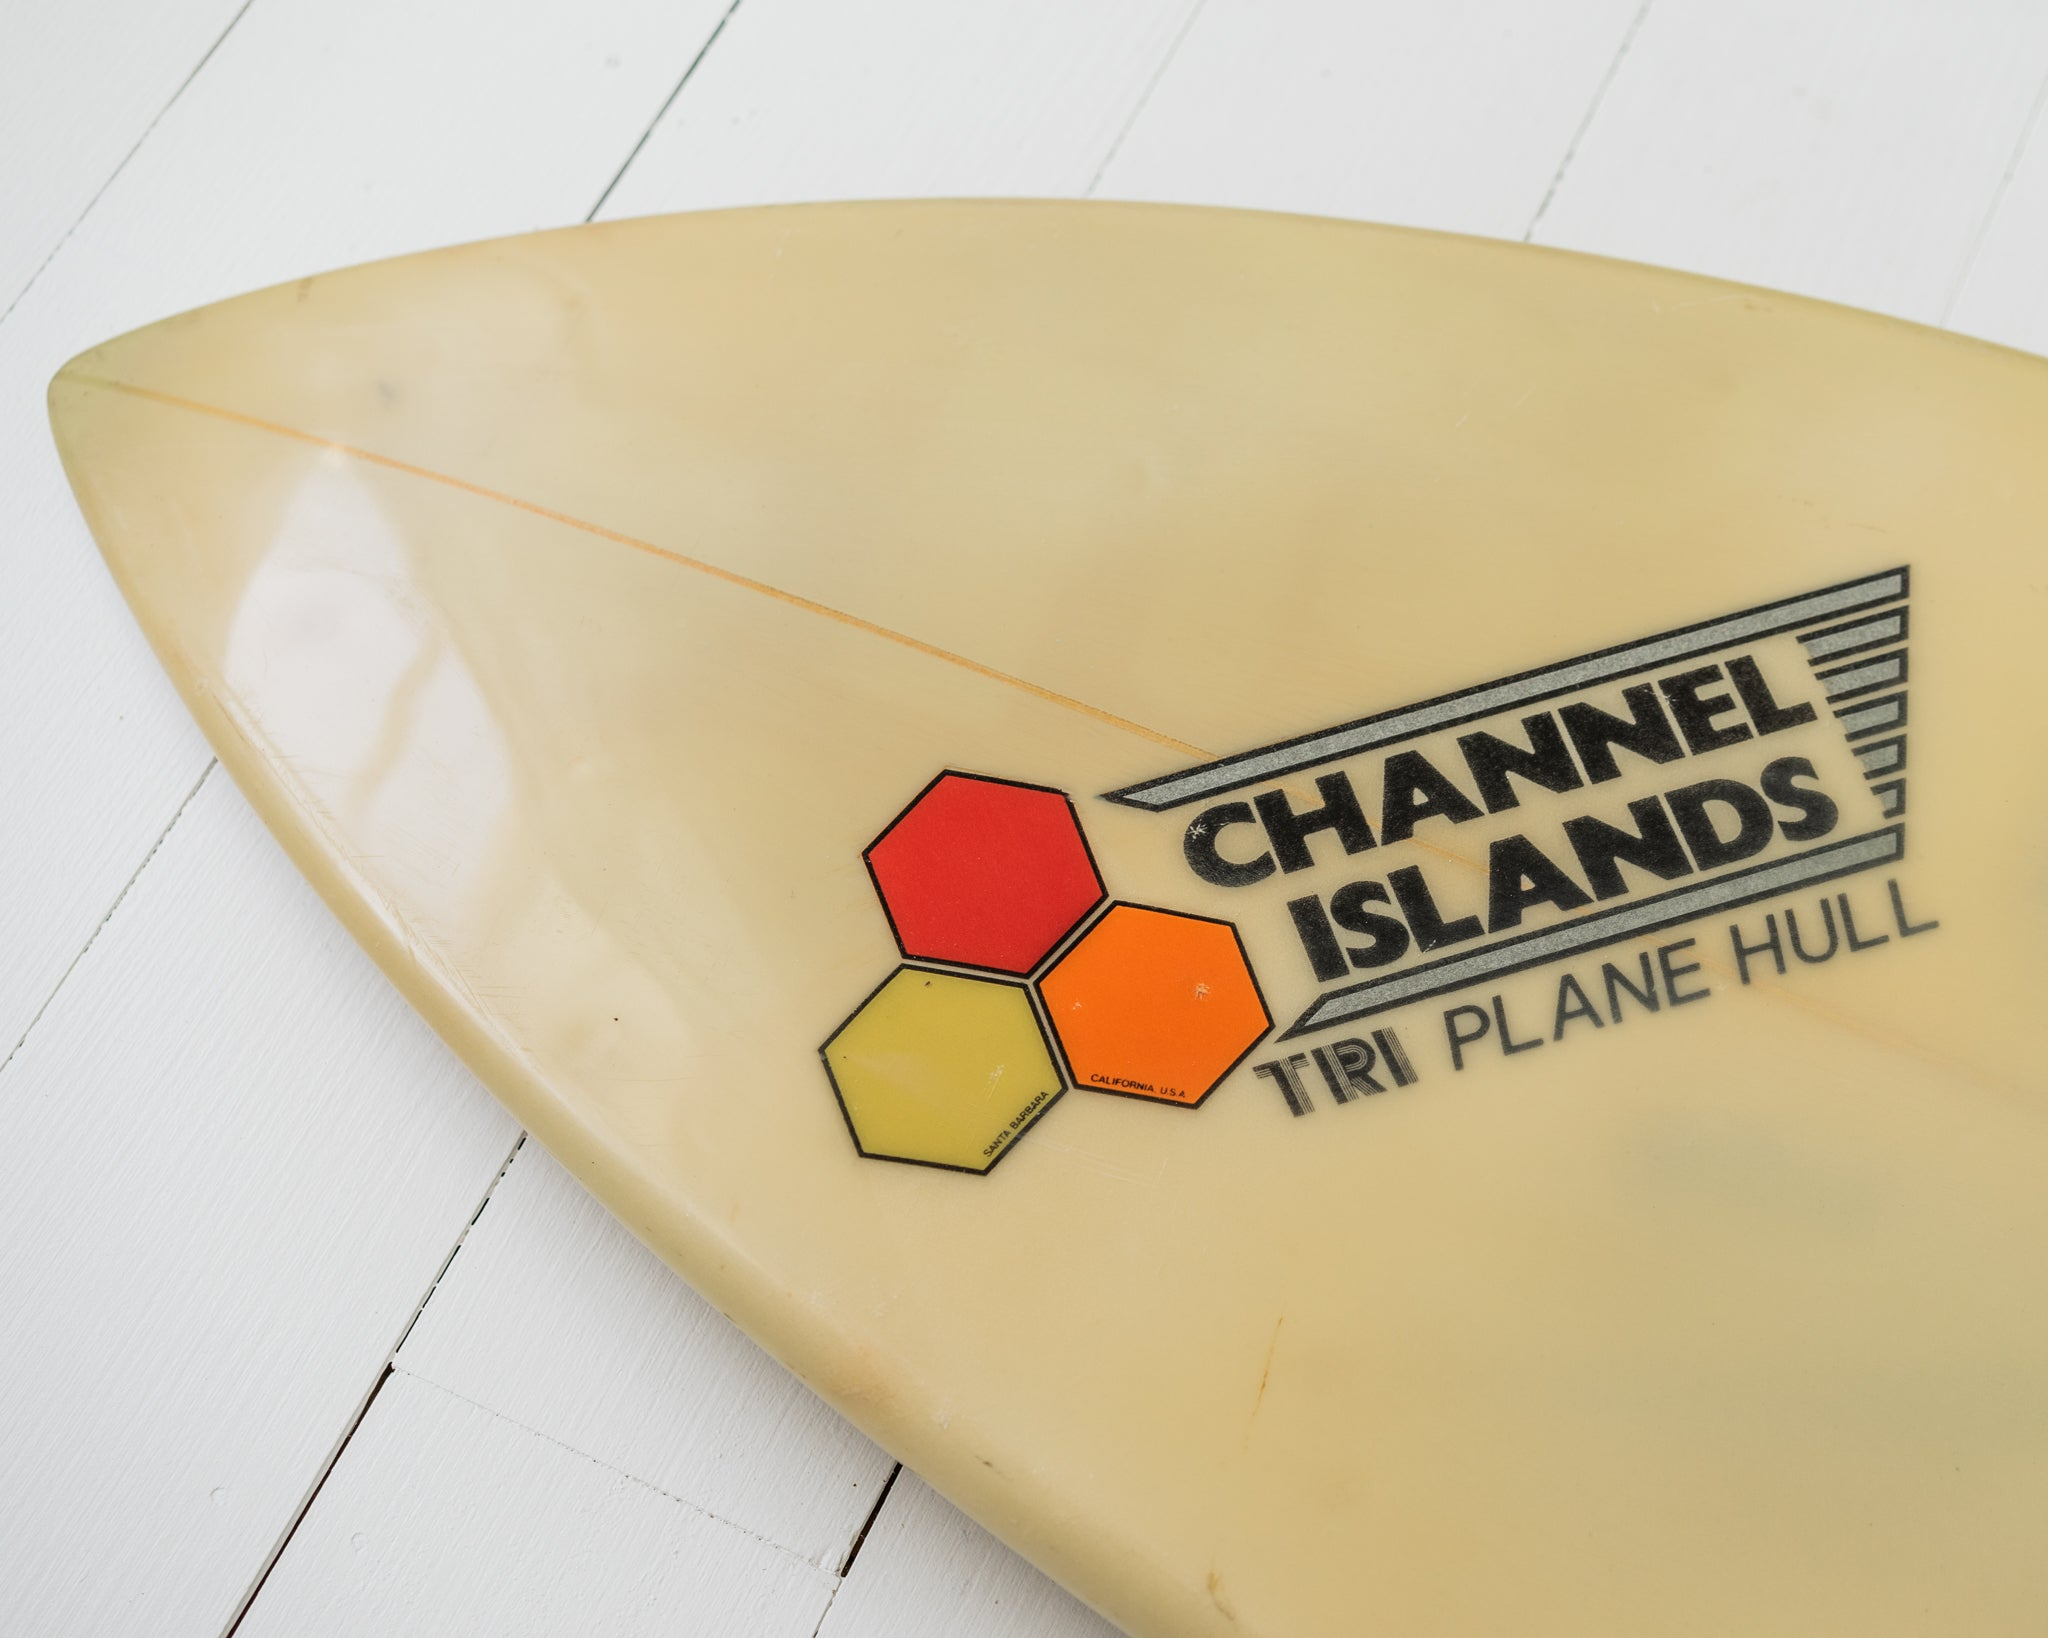 CHANNEL ISLAND - 6'0 Tri-plane Hull, Twin Fin